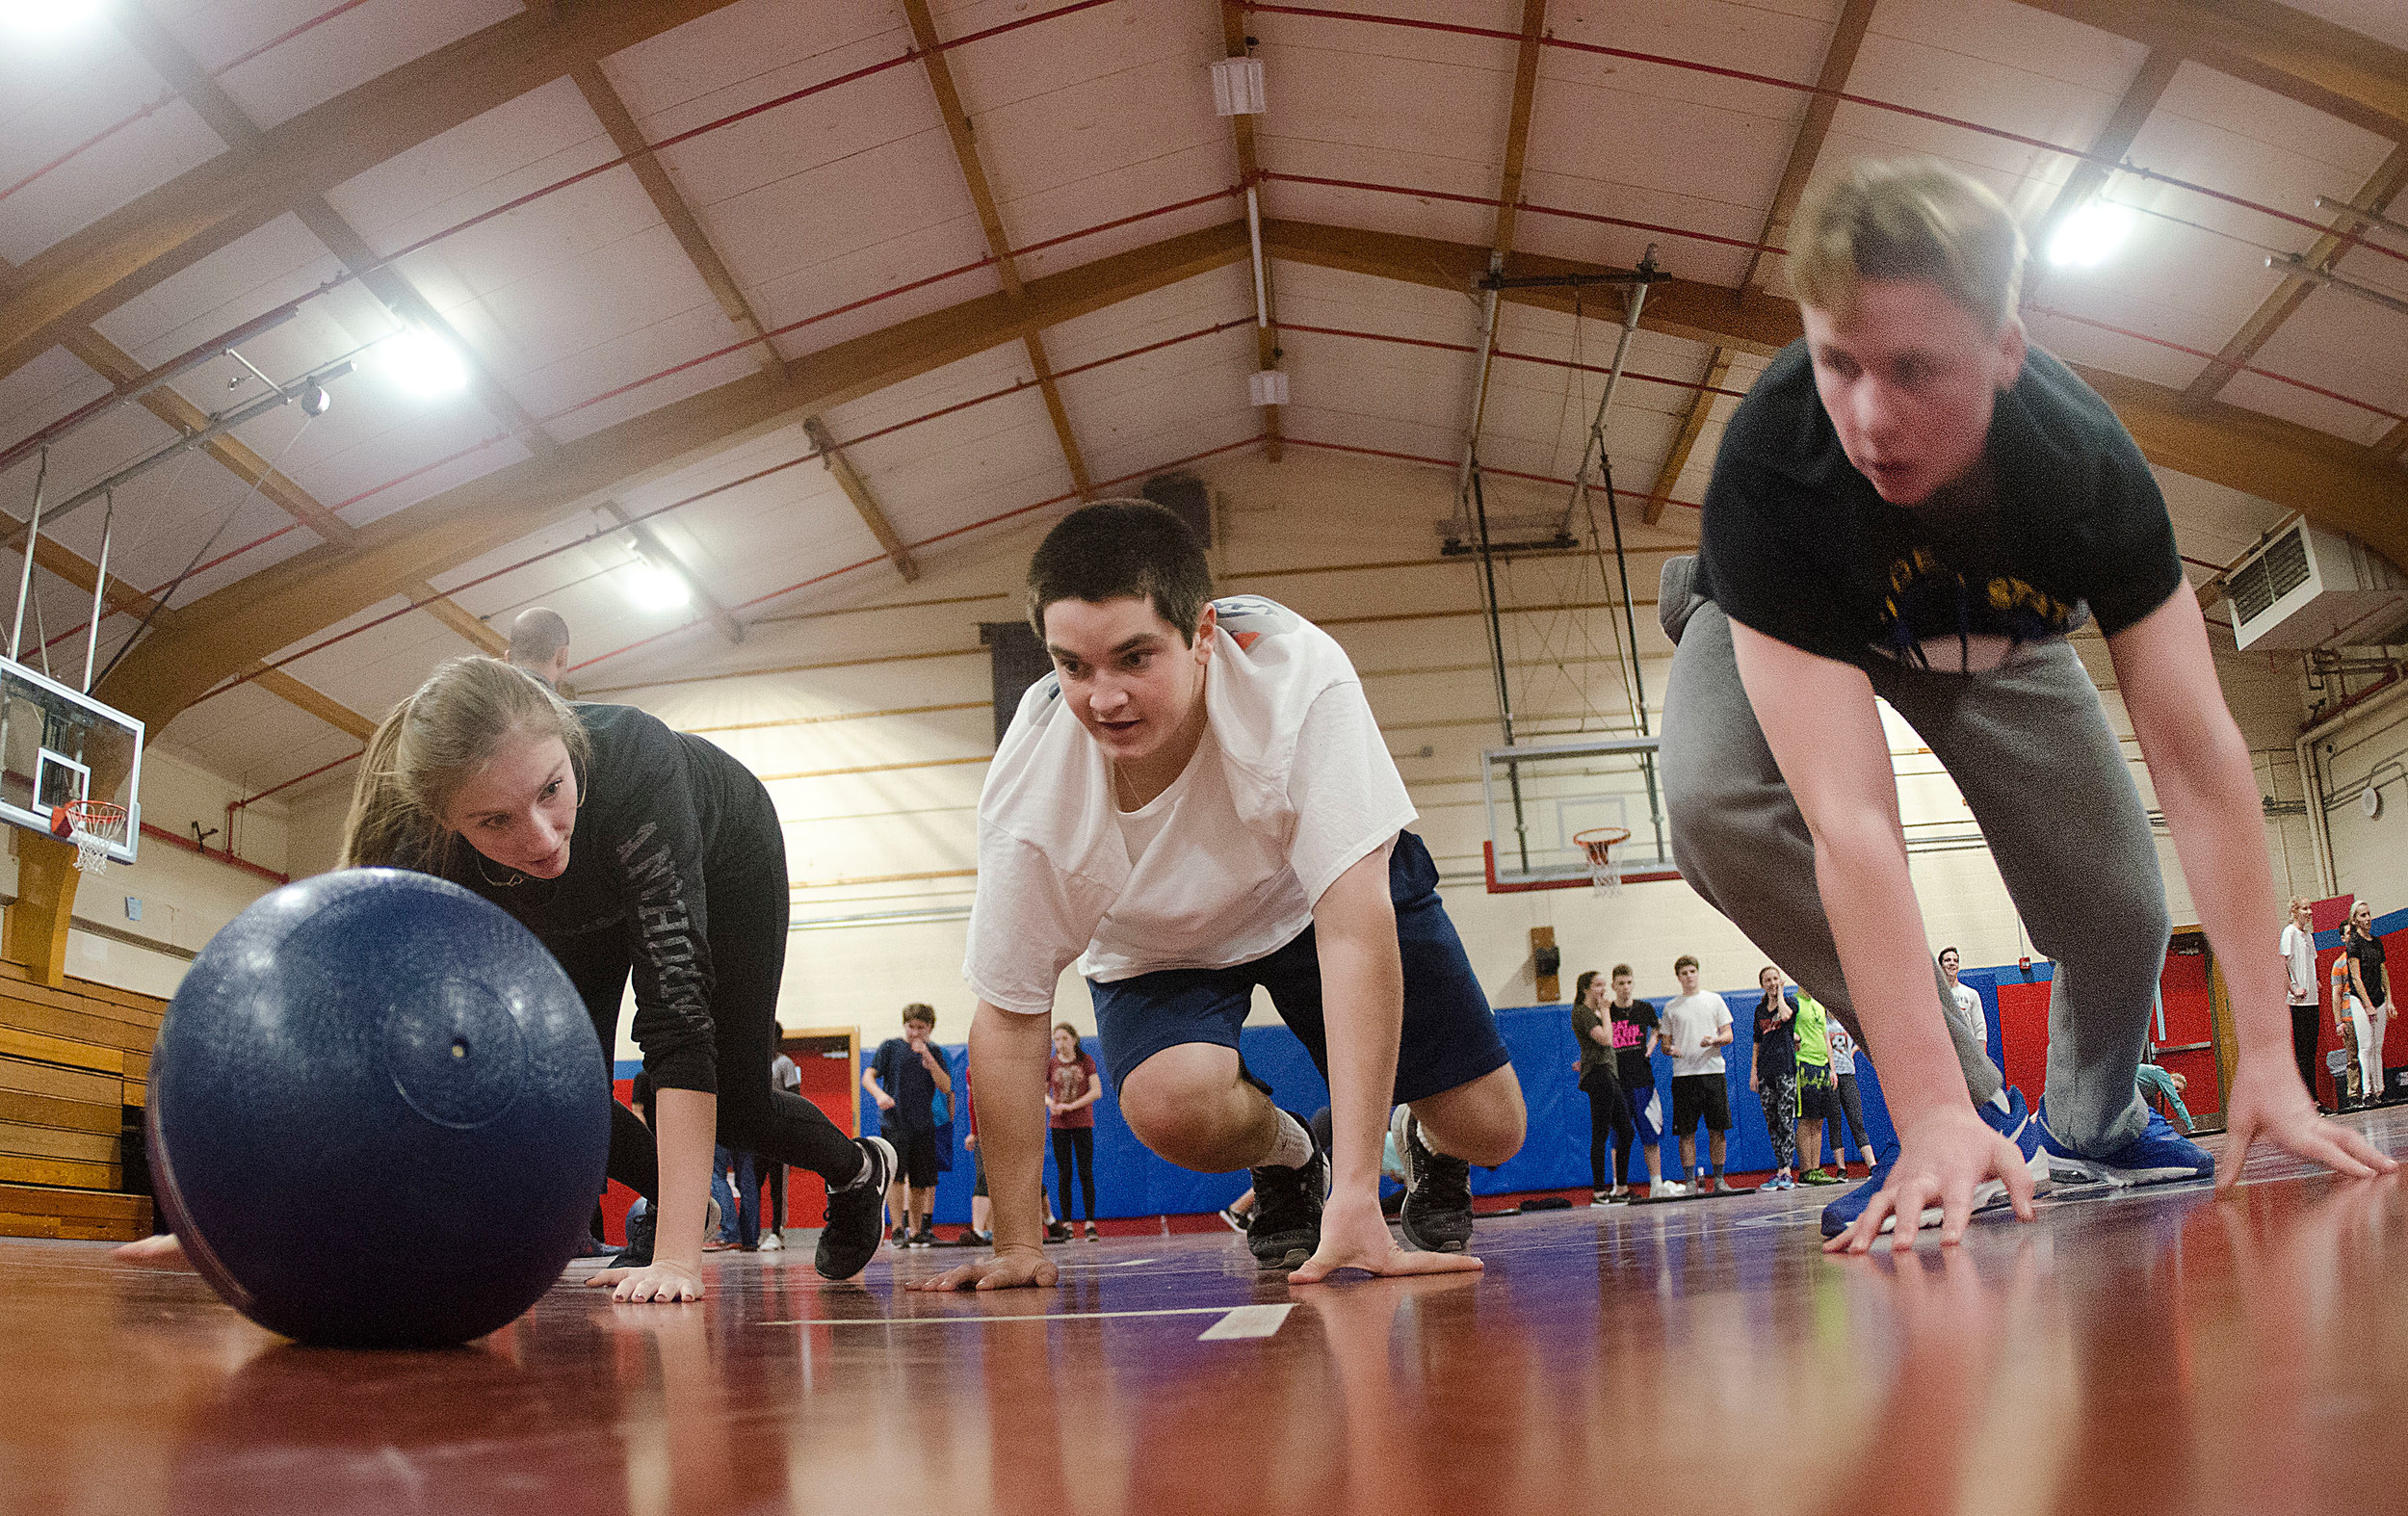 Kelly Conley, Noah McHugh and Conner Stone (from left) bear-crawl across the floor during a drill.